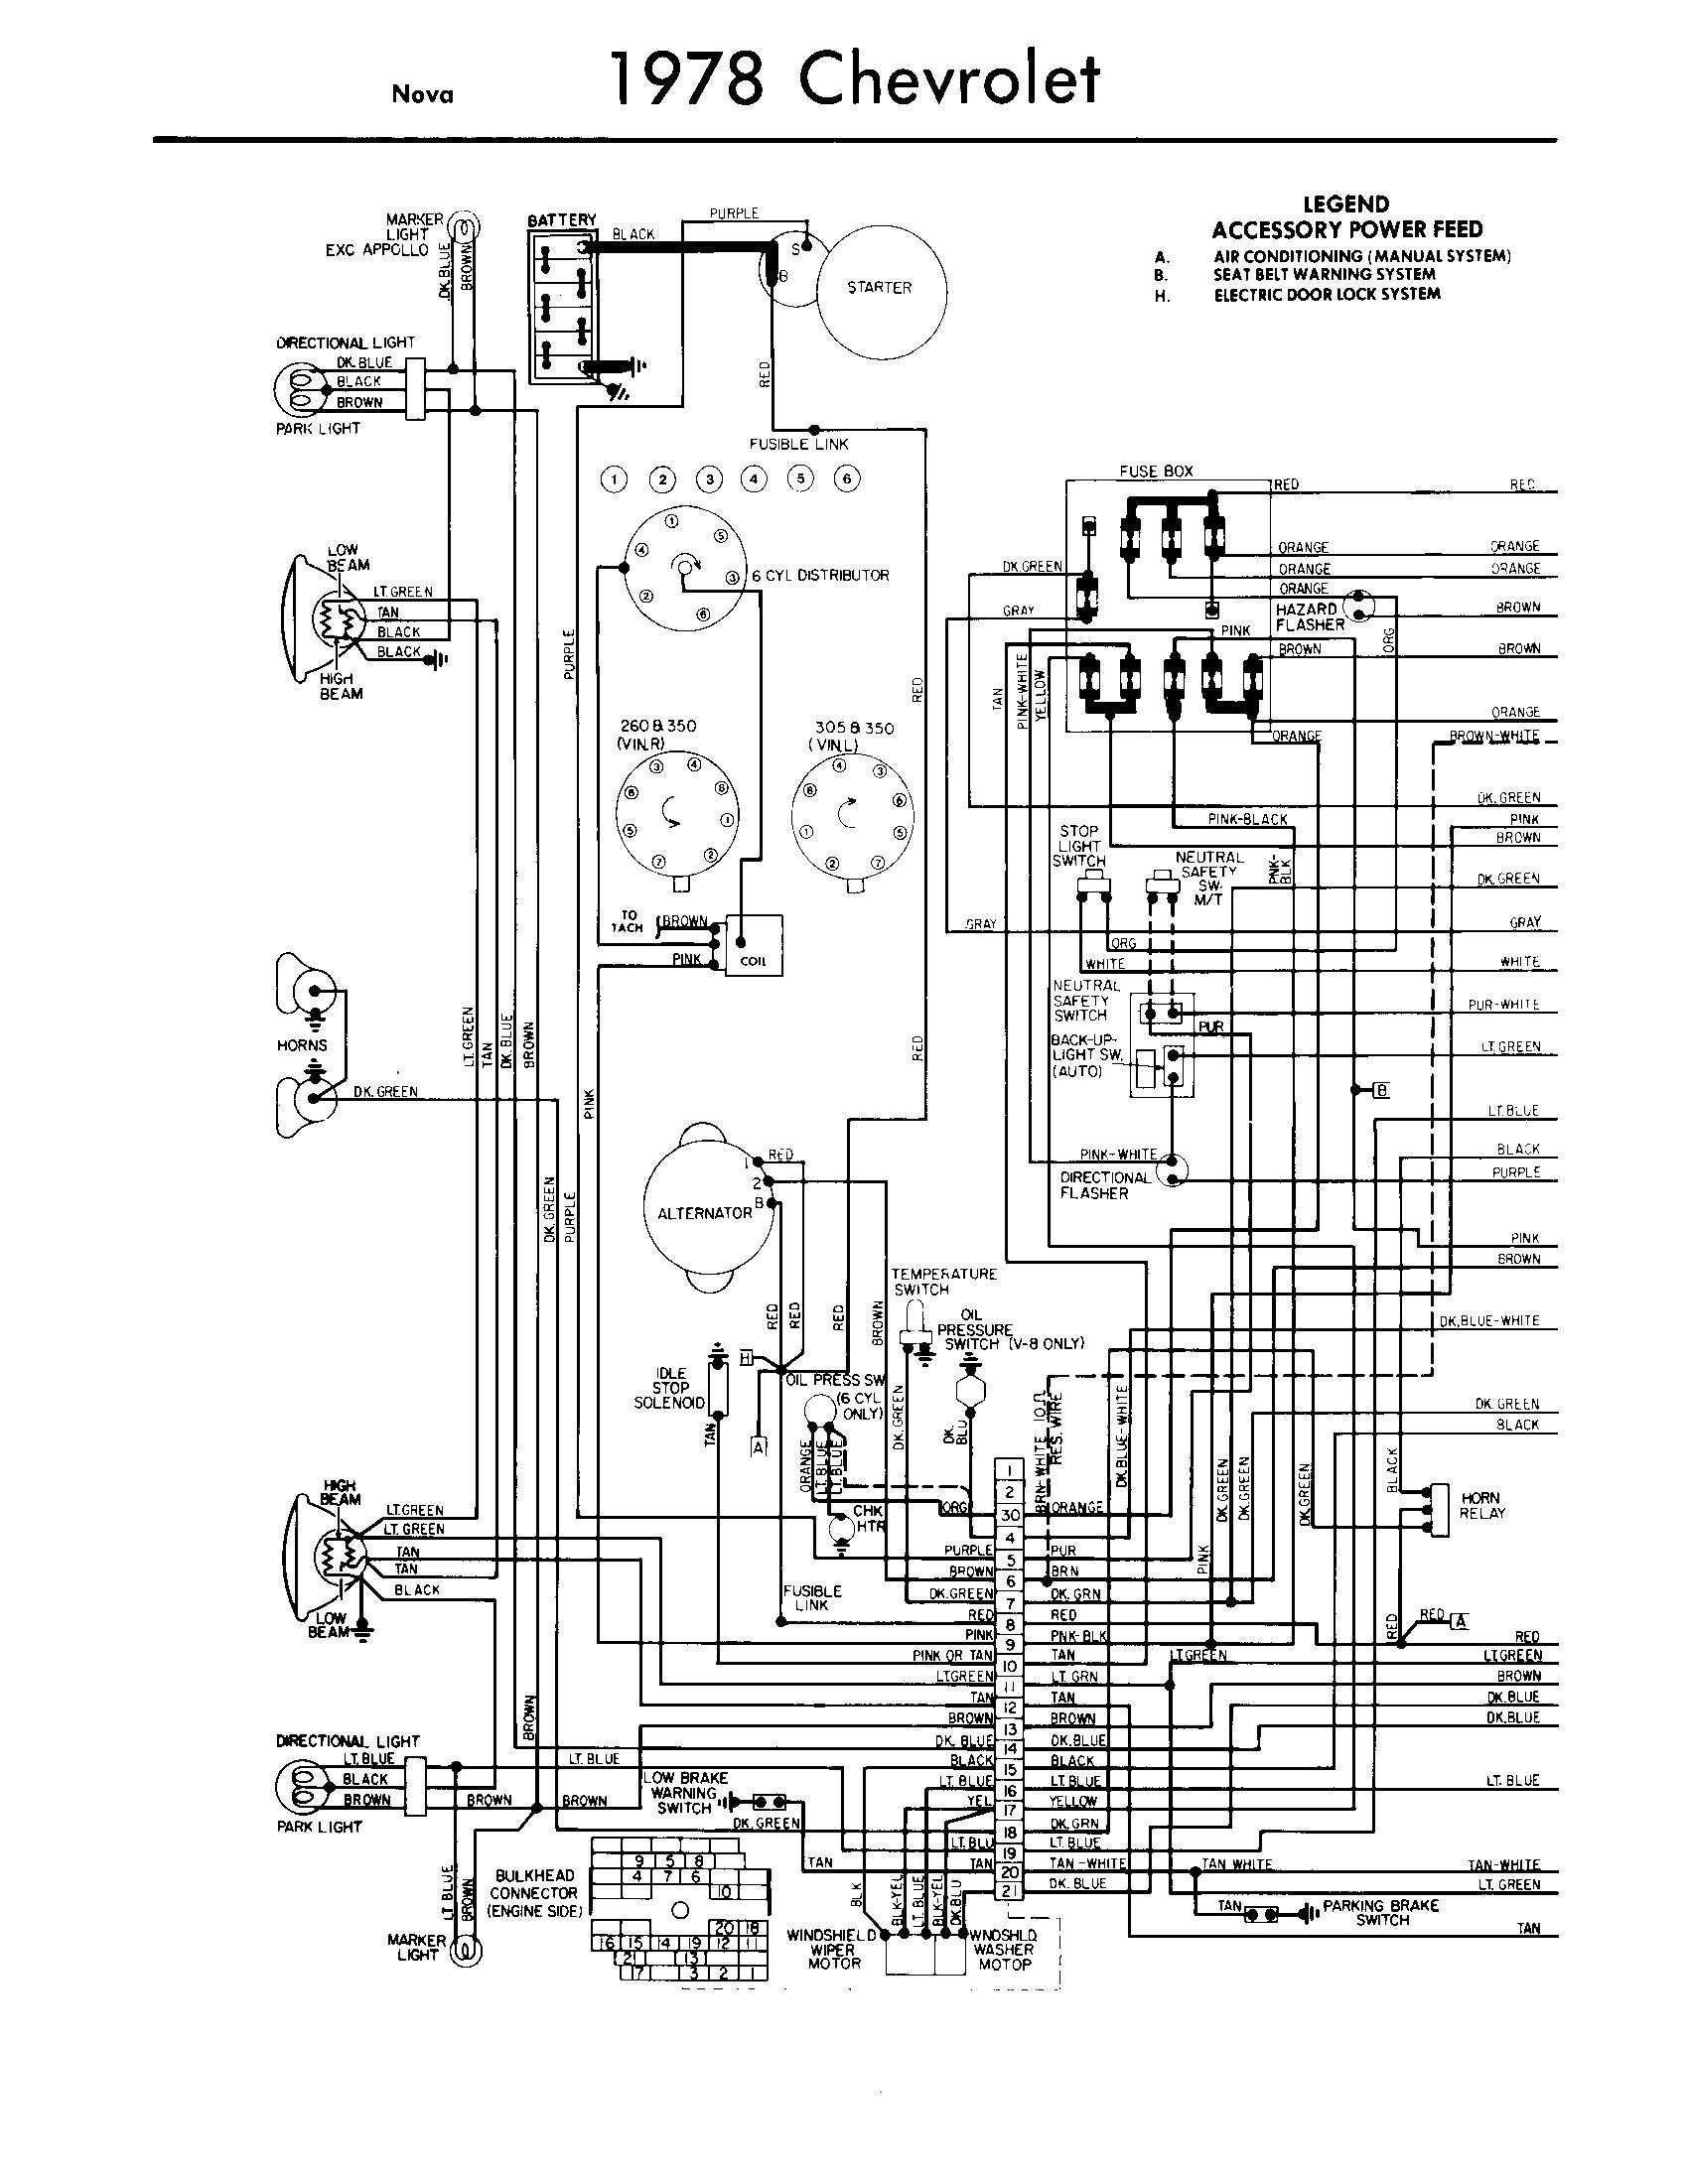 1987 Chevy Truck Vacuum Line Diagram 1977 Chevy Truck